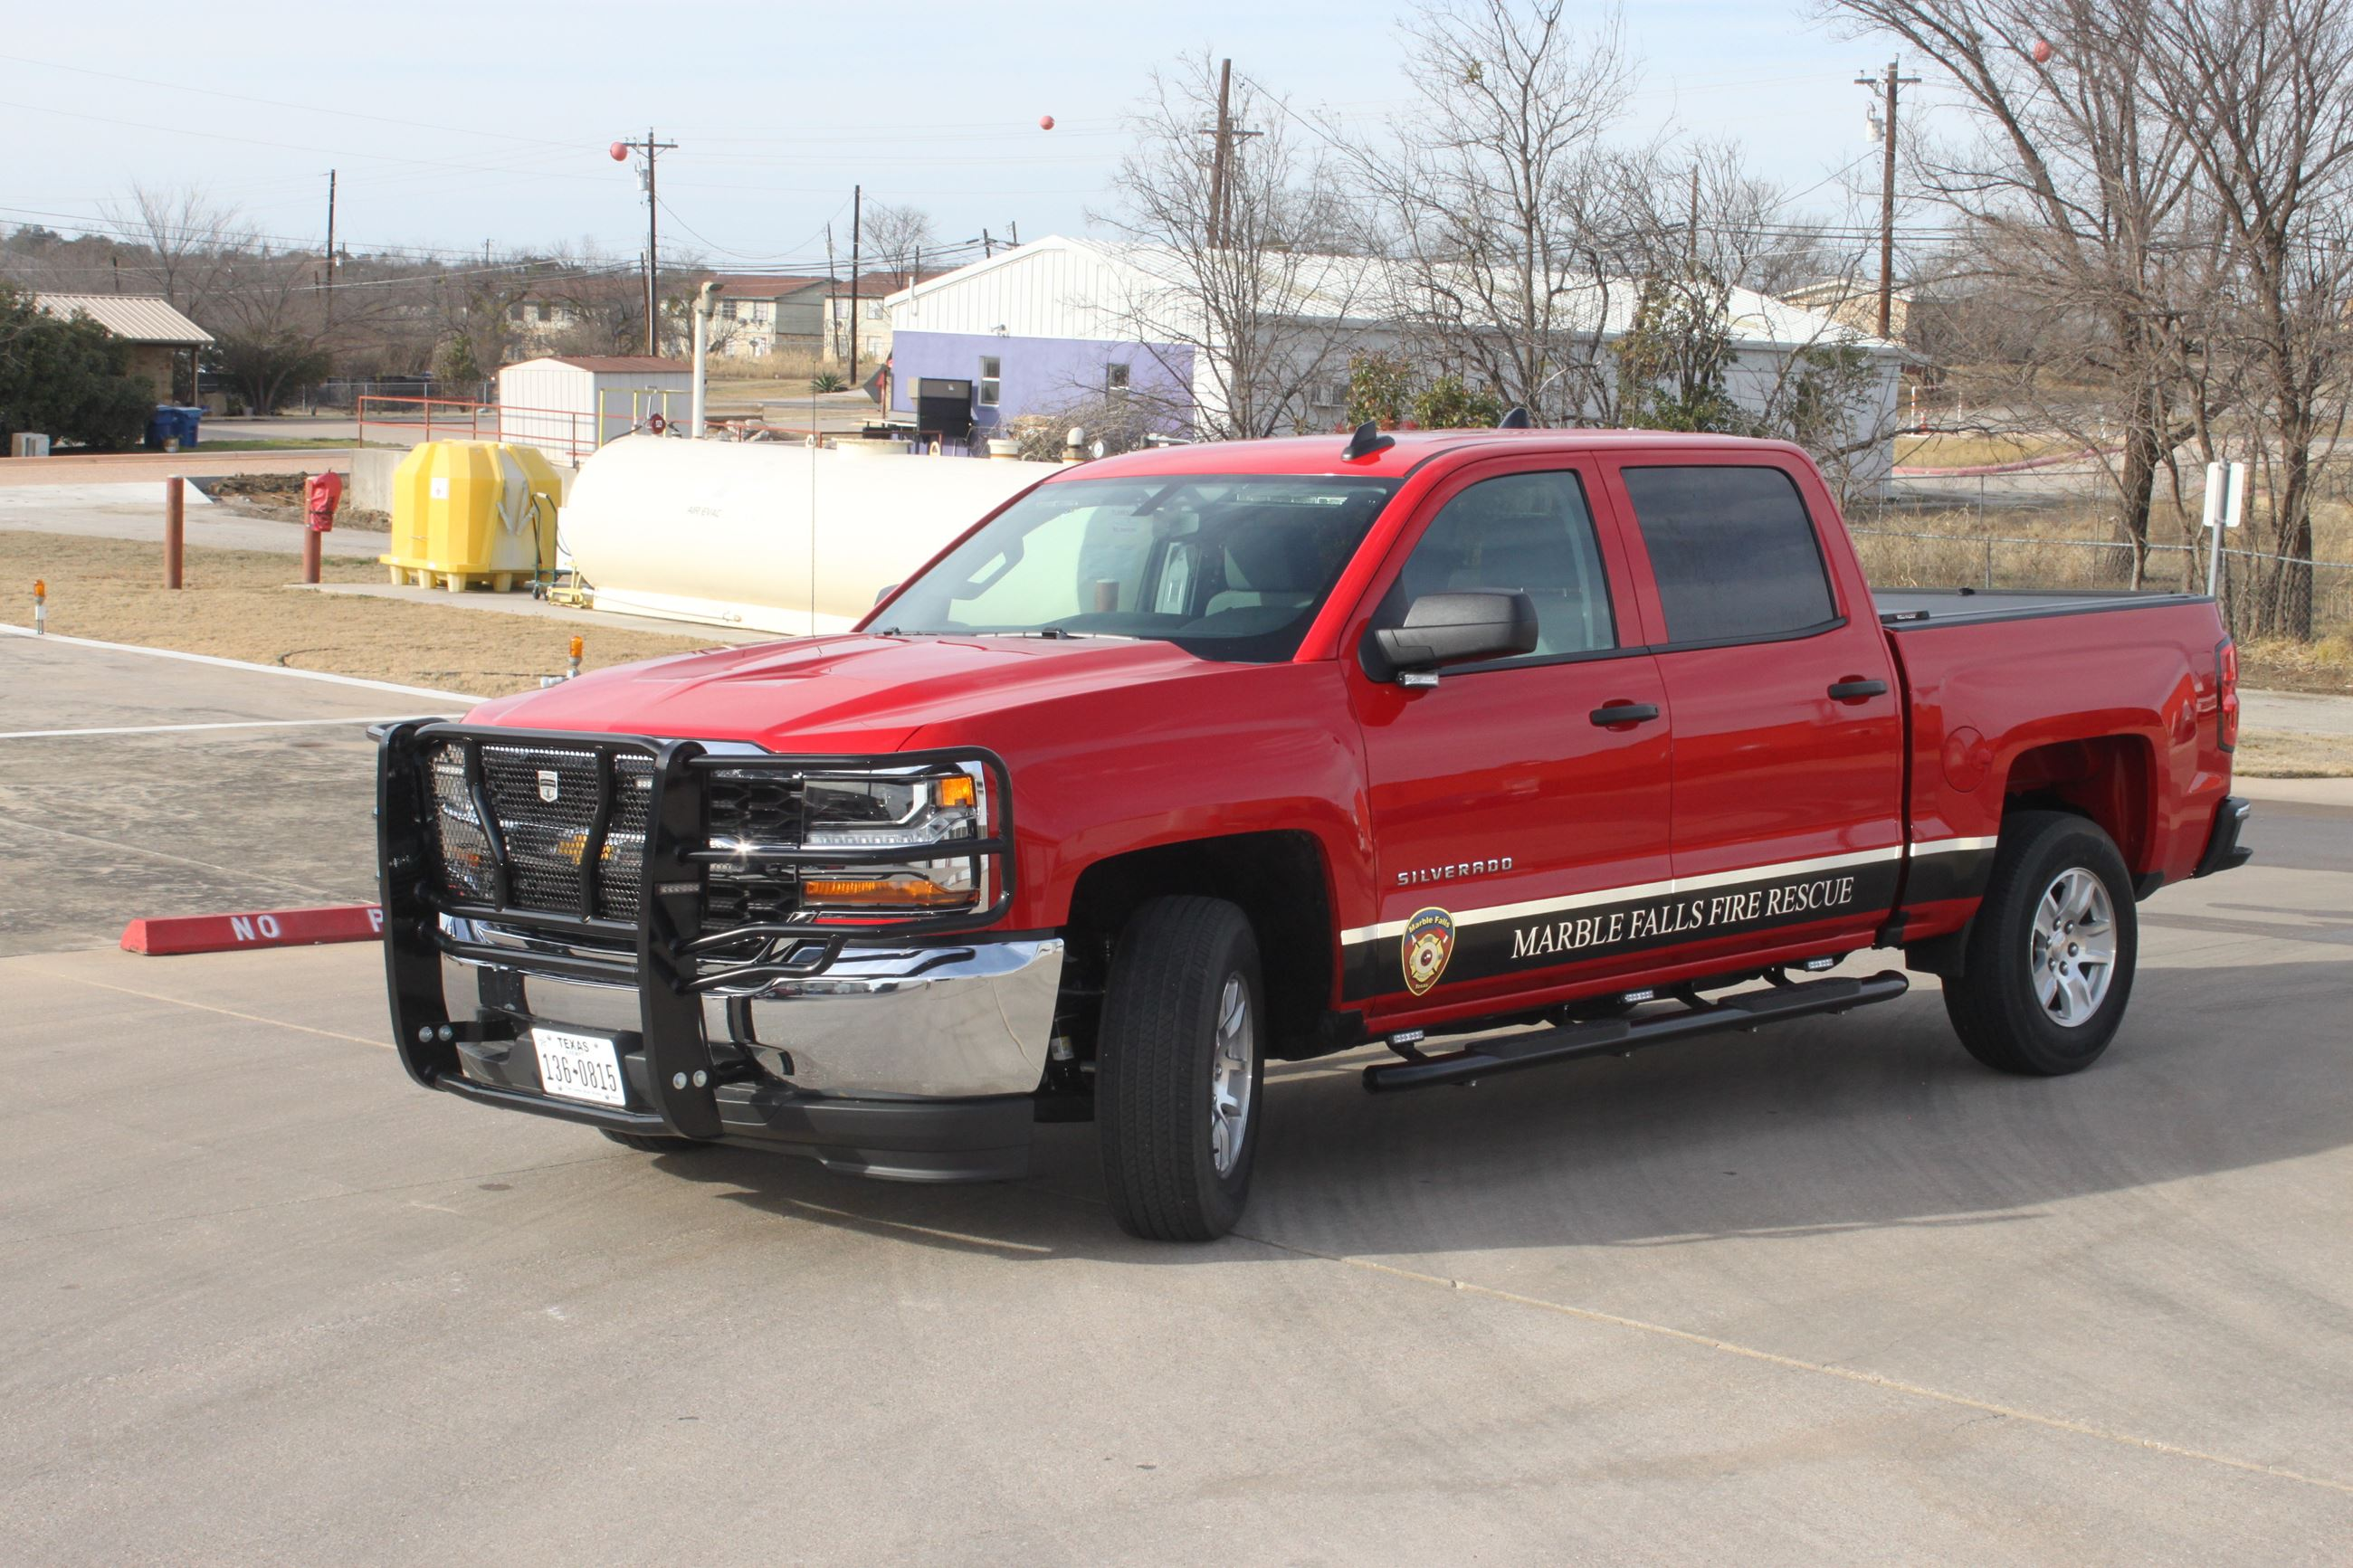 Chief 1, a 2018 Chevy Silverado, the Fire Chief's vehicle